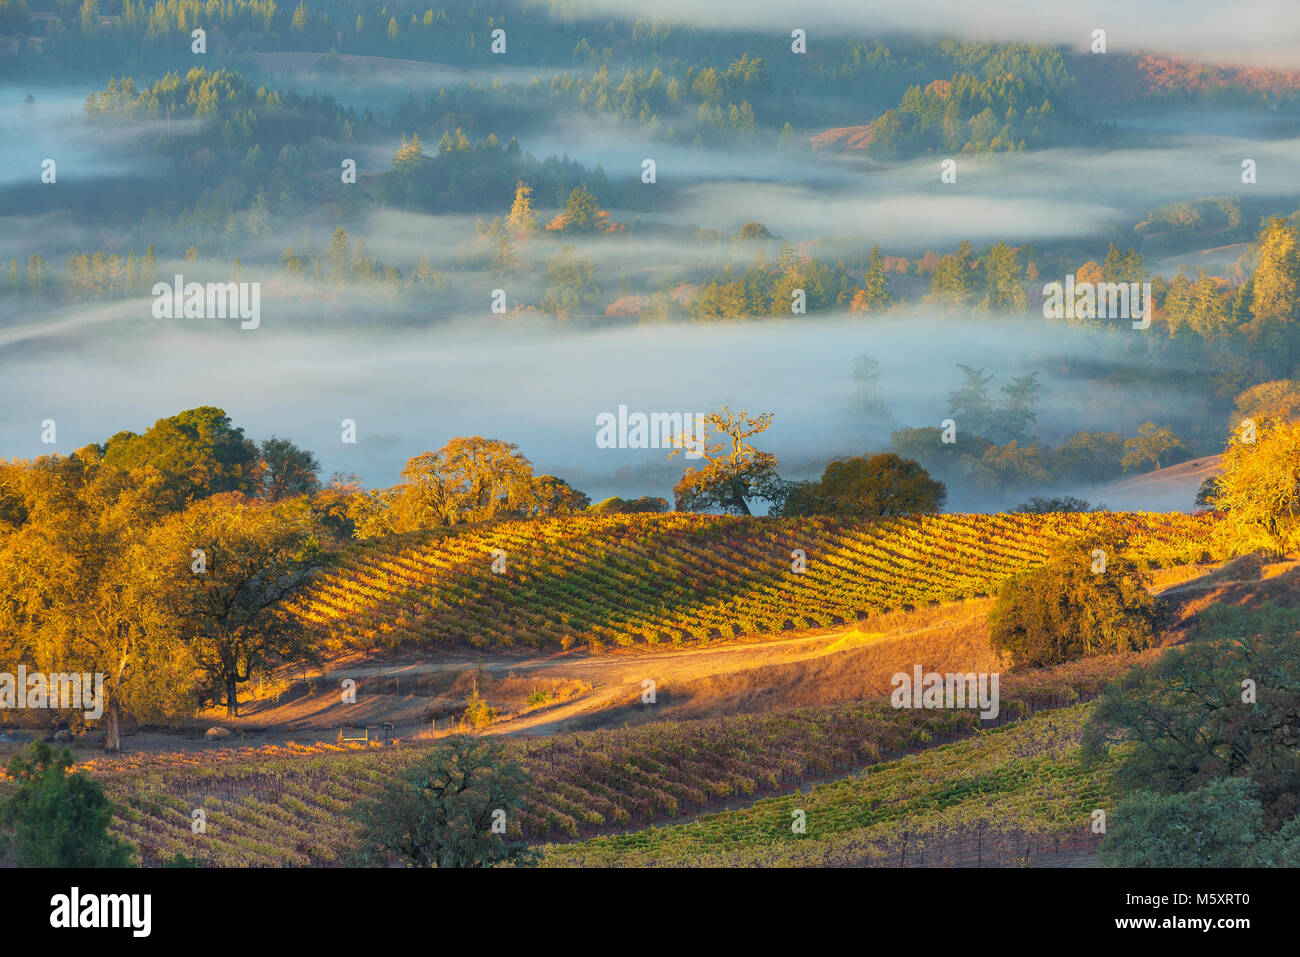 Sunrise, Marietta Vineyards, Yorkville Highlands, Mendocino County, California - Stock Image